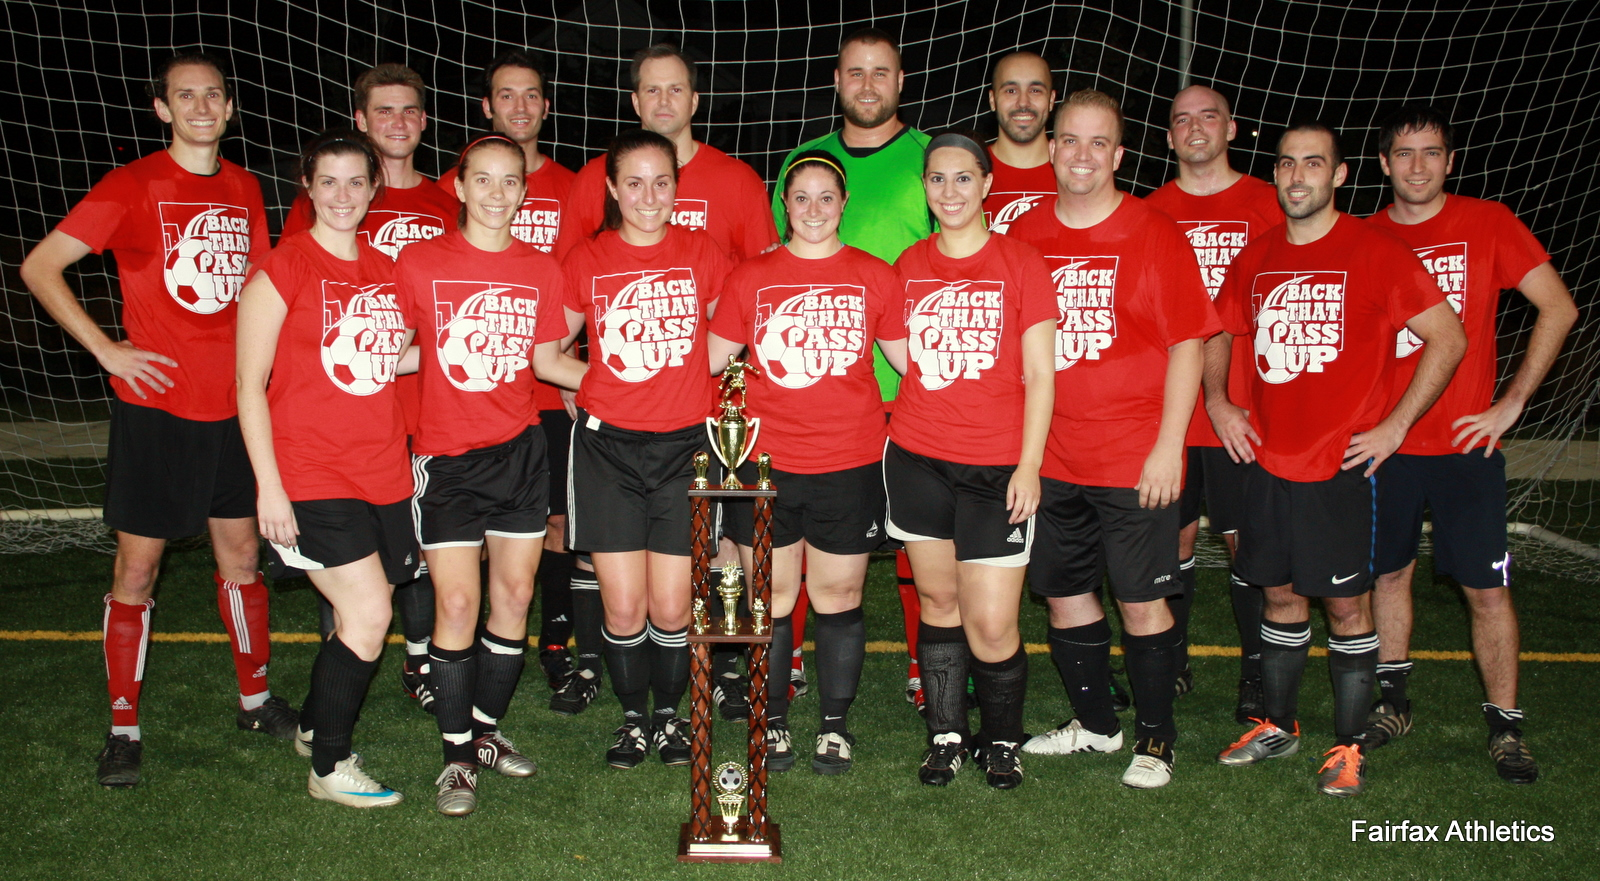 Wednesday Night Competitive League Soccer Champions - Upper 90